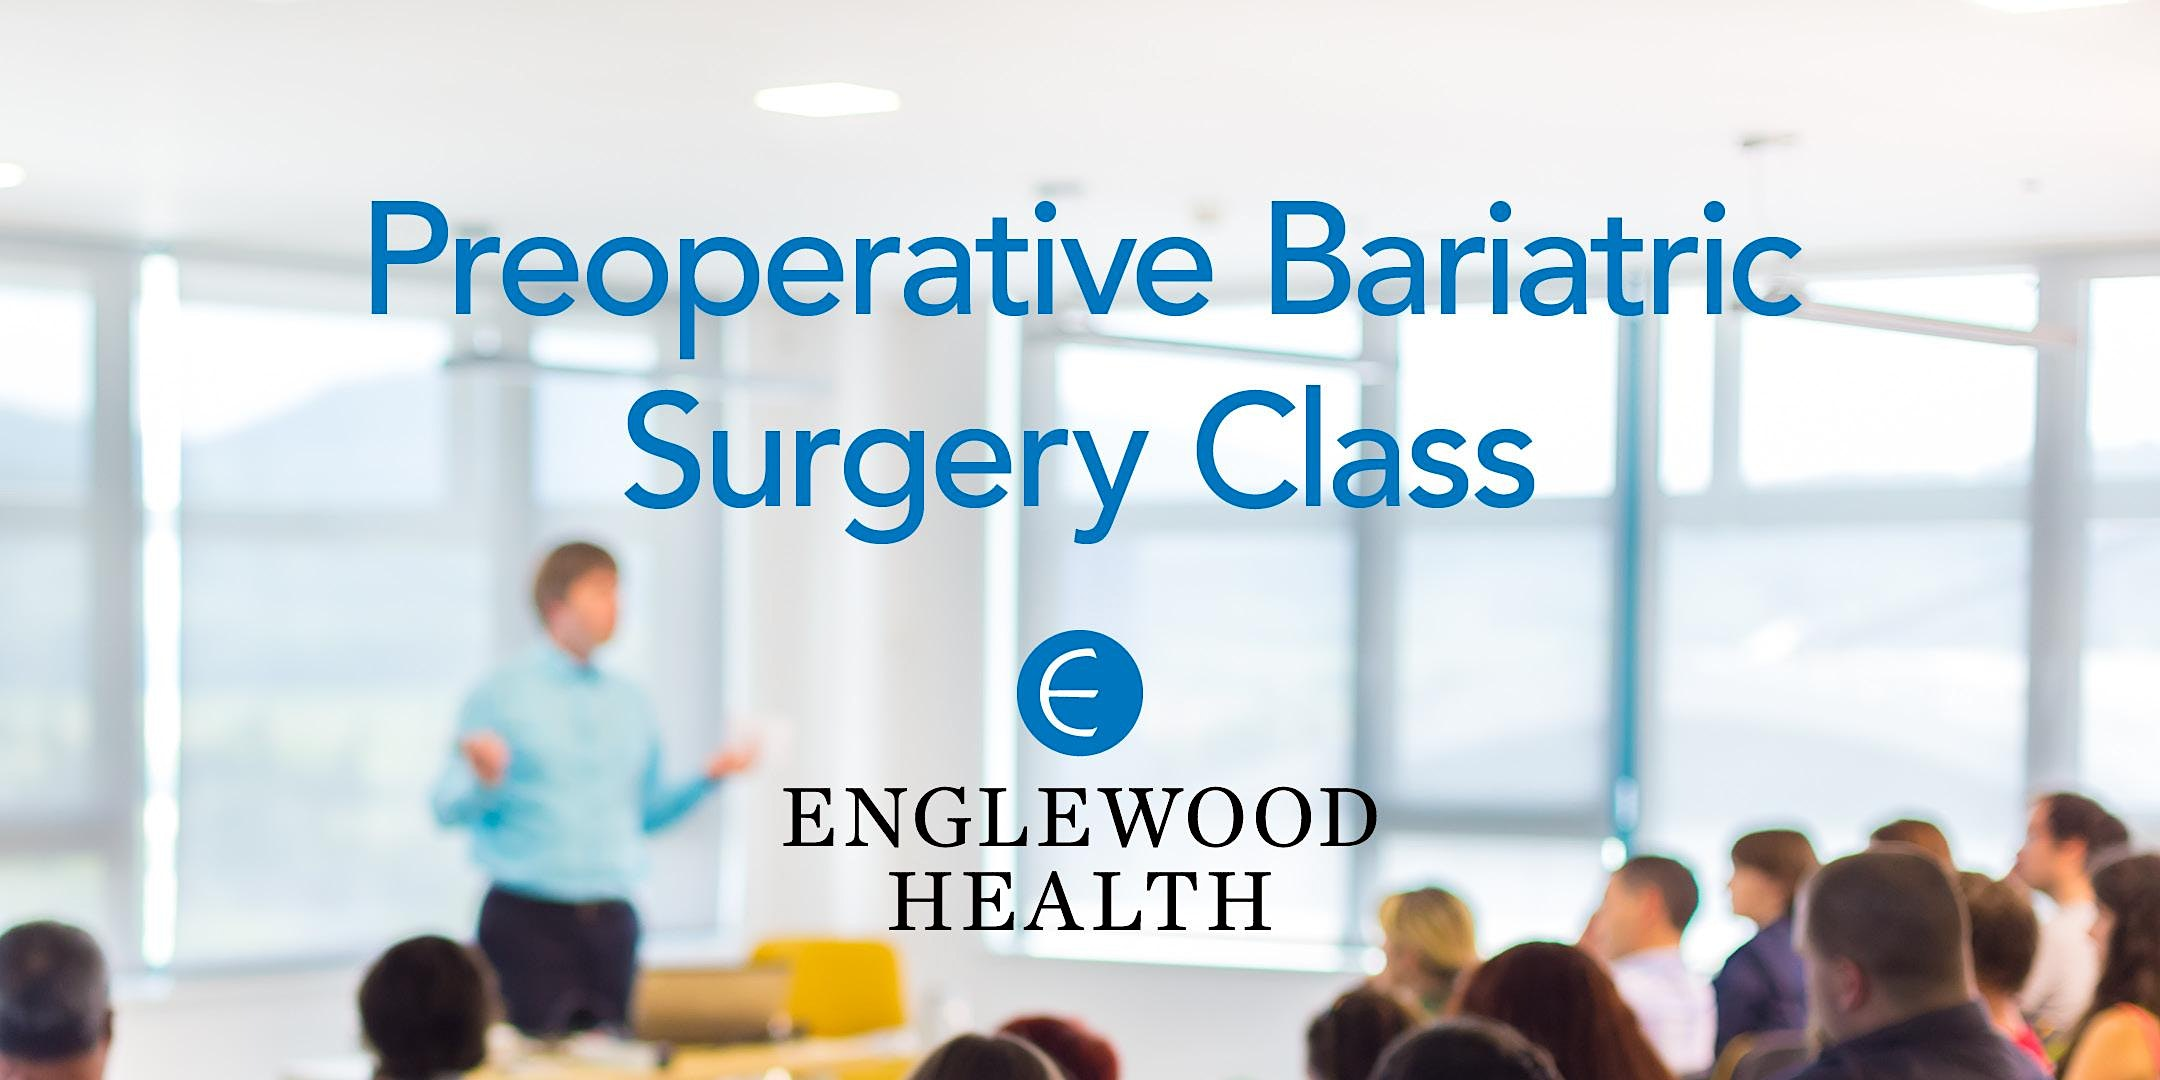 More info: Preoperative Bariatric Surgery Class